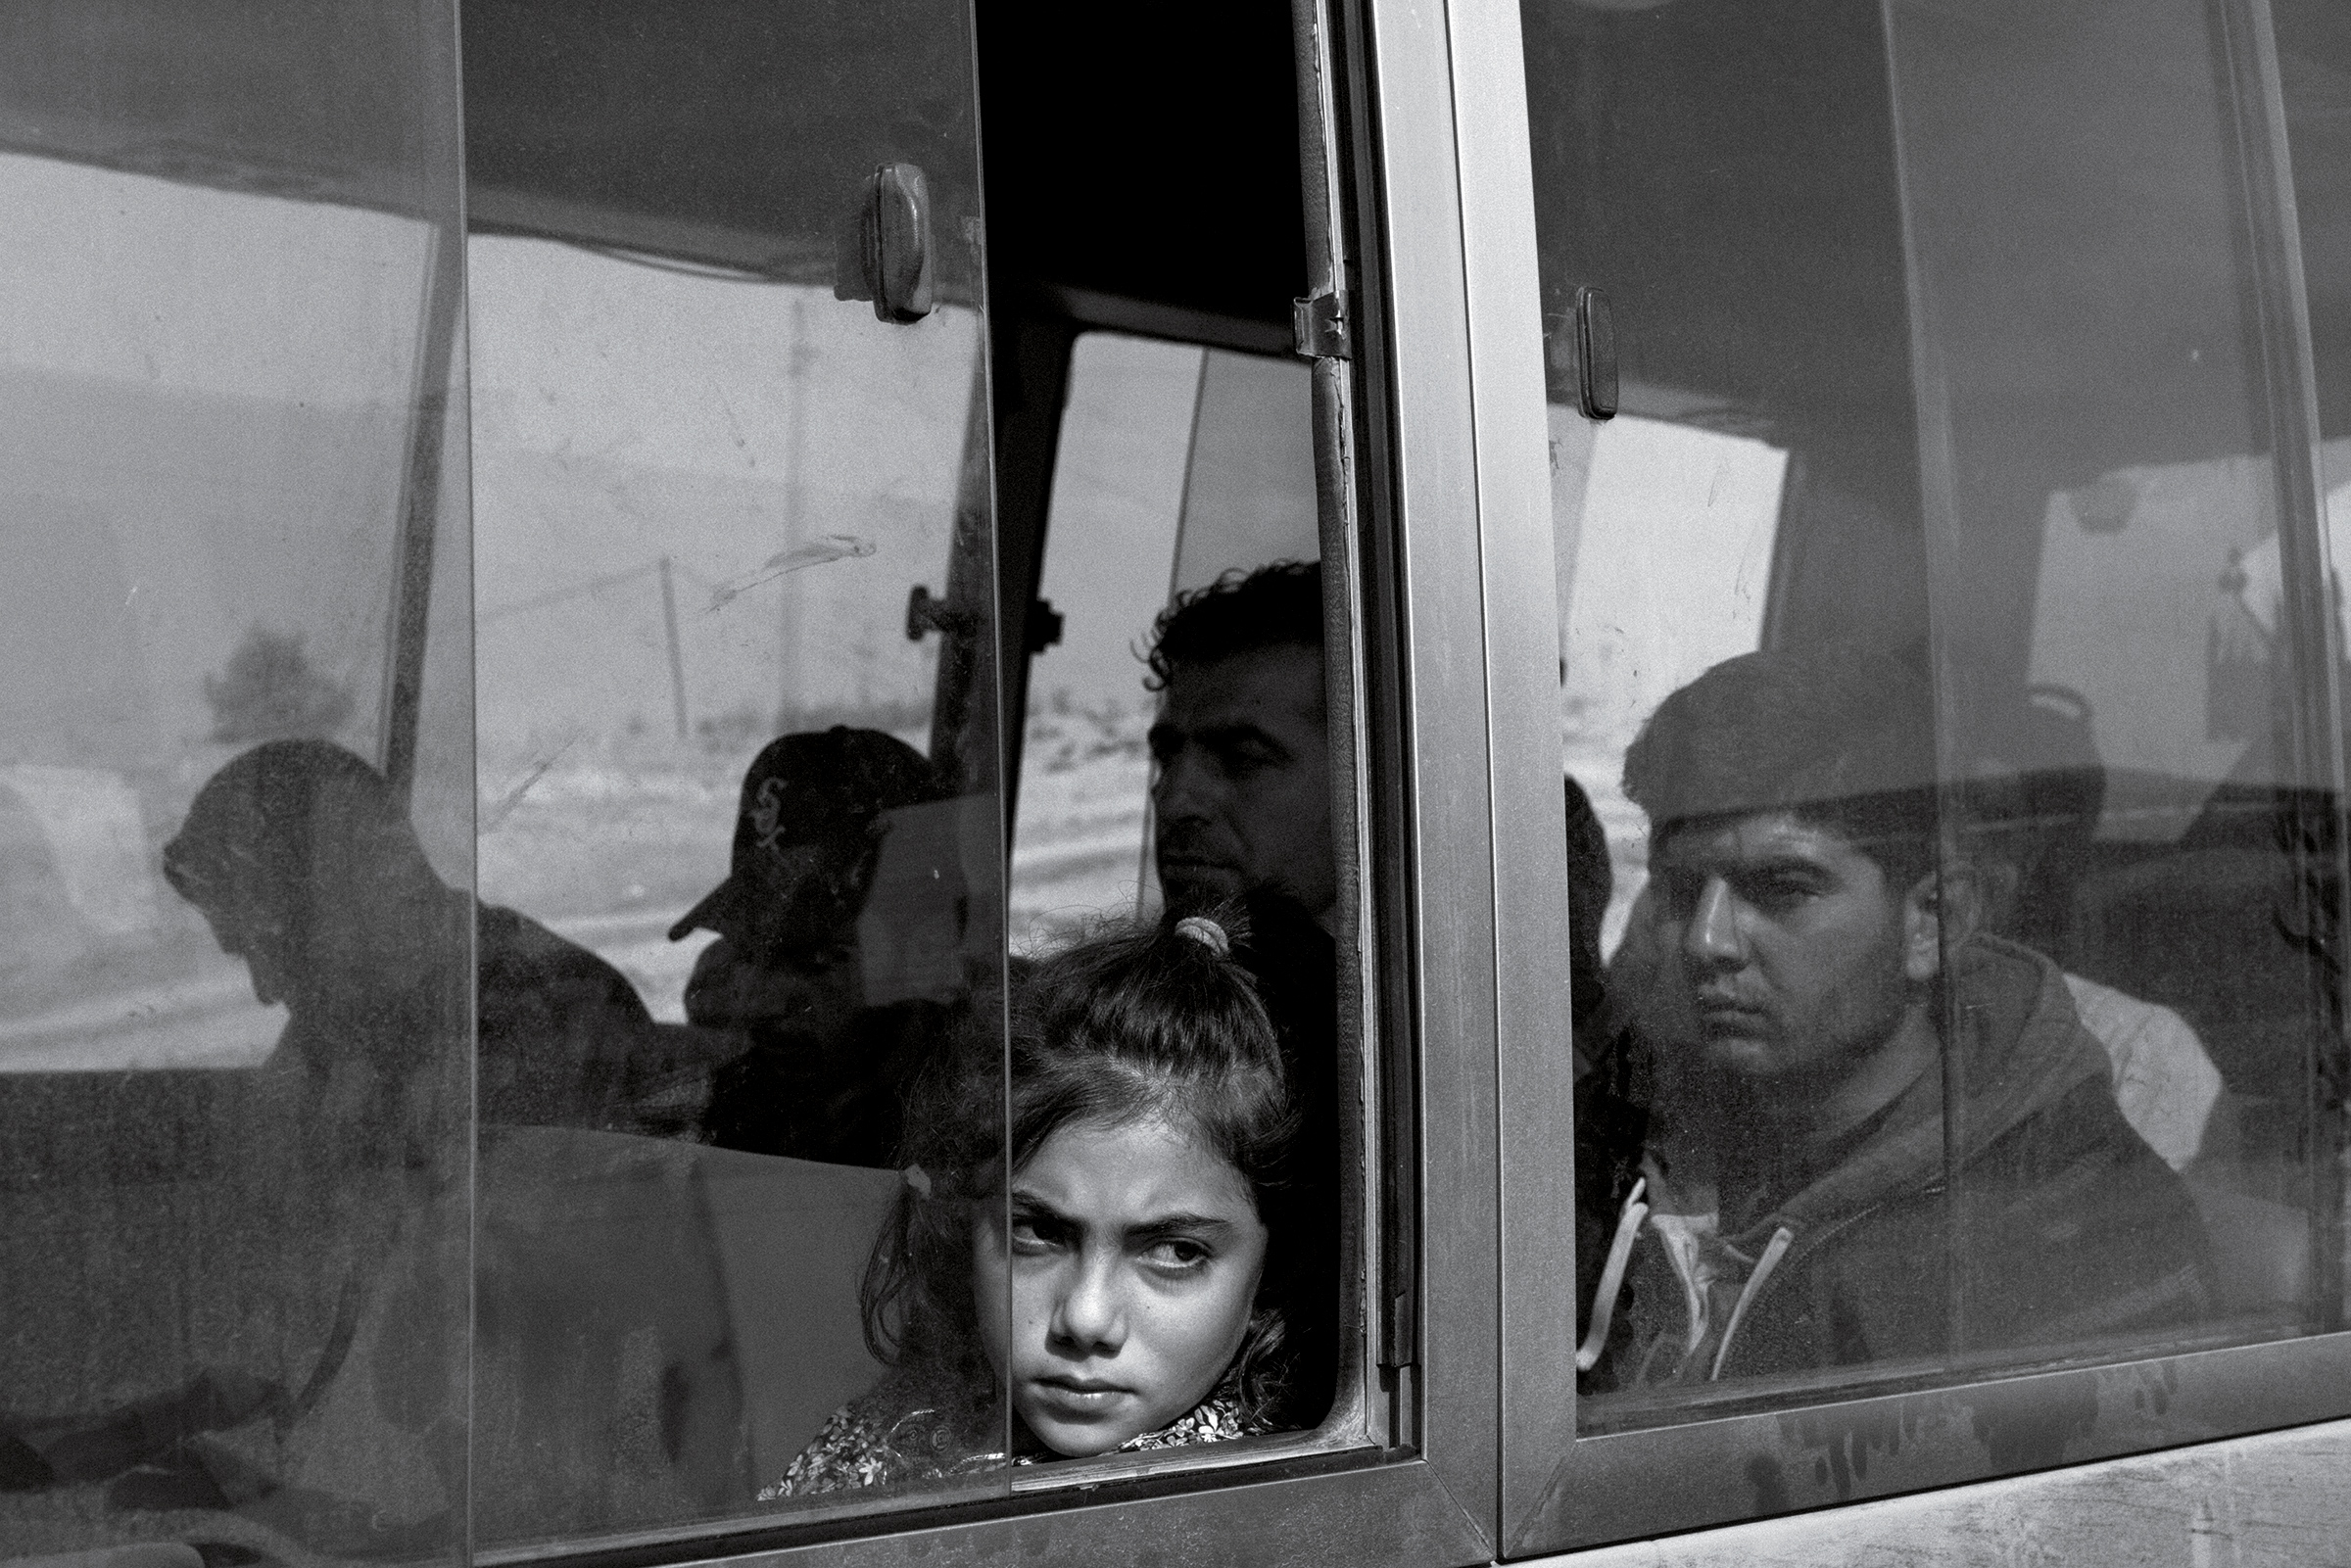 Nuhat Abdul Hamid, 9, from the Syrian Kurdish town of Darbasiyah, aboard a bus transporting refugees to the Bardarash camp in Iraq on Nov. 1. Nov. 25 issue.